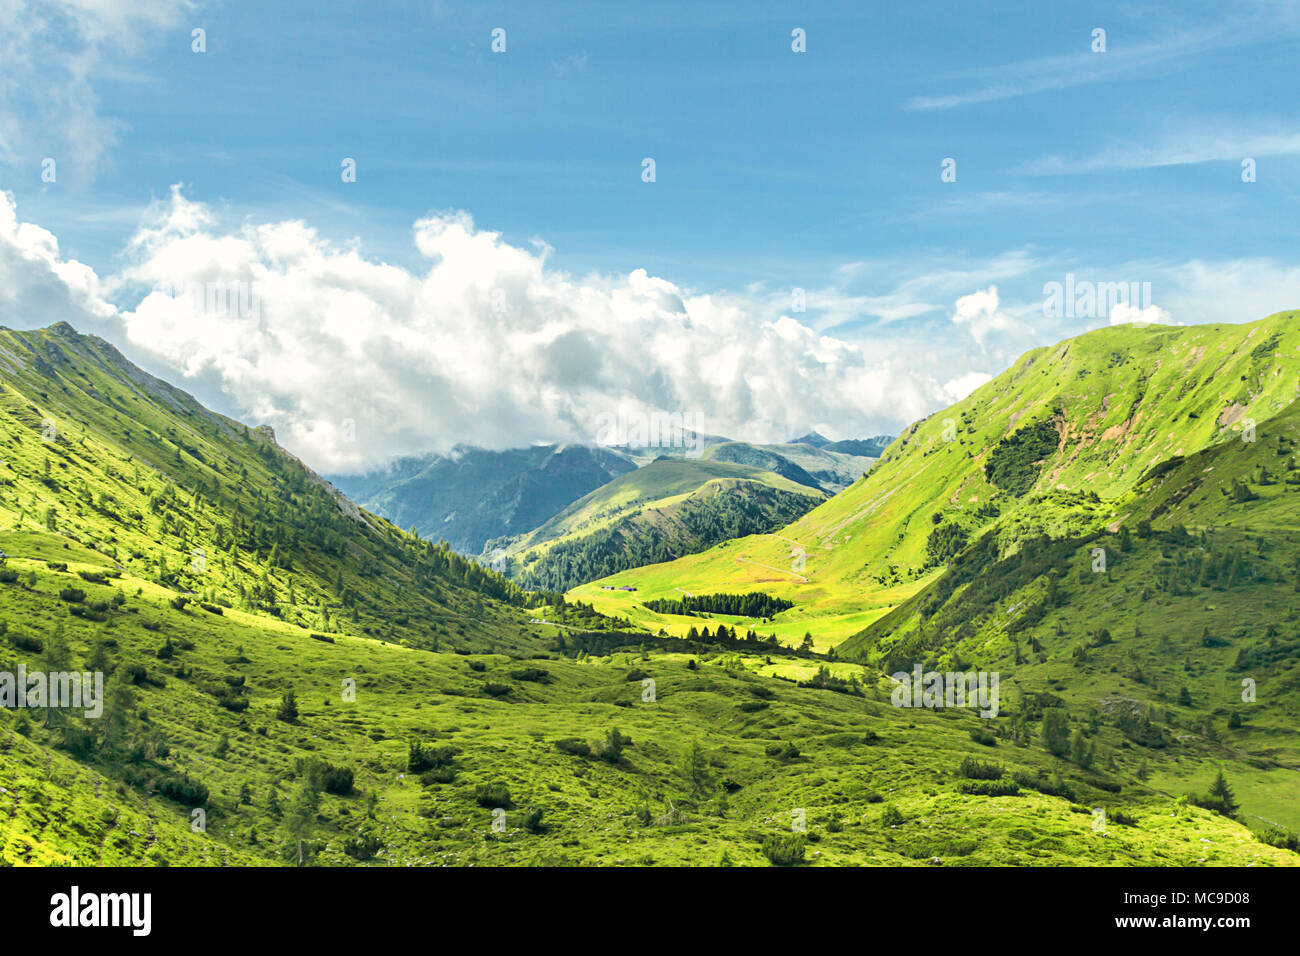 Beautiful view in Mount Gaver National Park, North Italy. Valsabbia, Brescia, Italy. - Stock Image